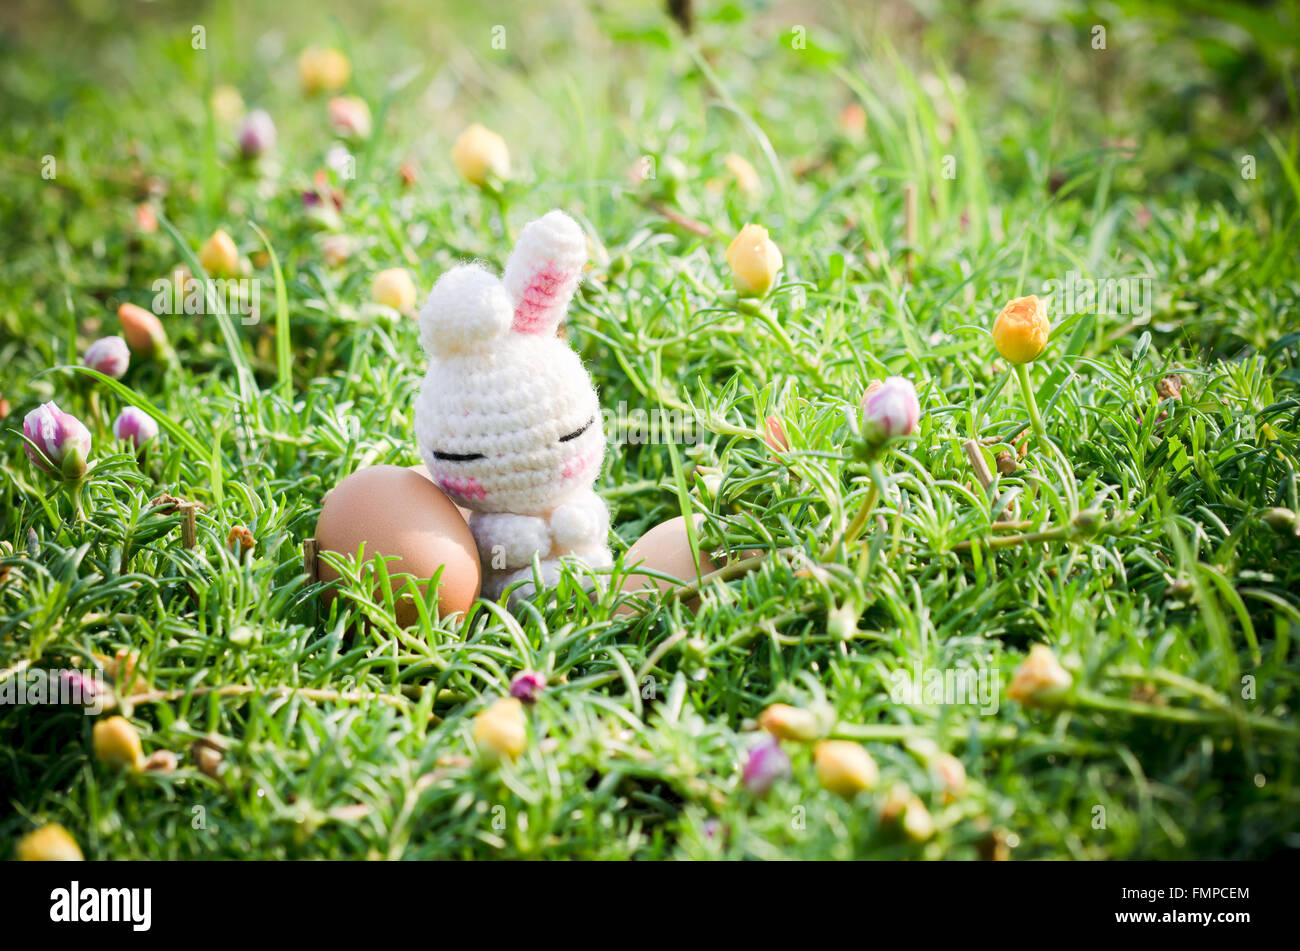 White Bunny With Easter Eggs On Colorful Flowers In The Morning